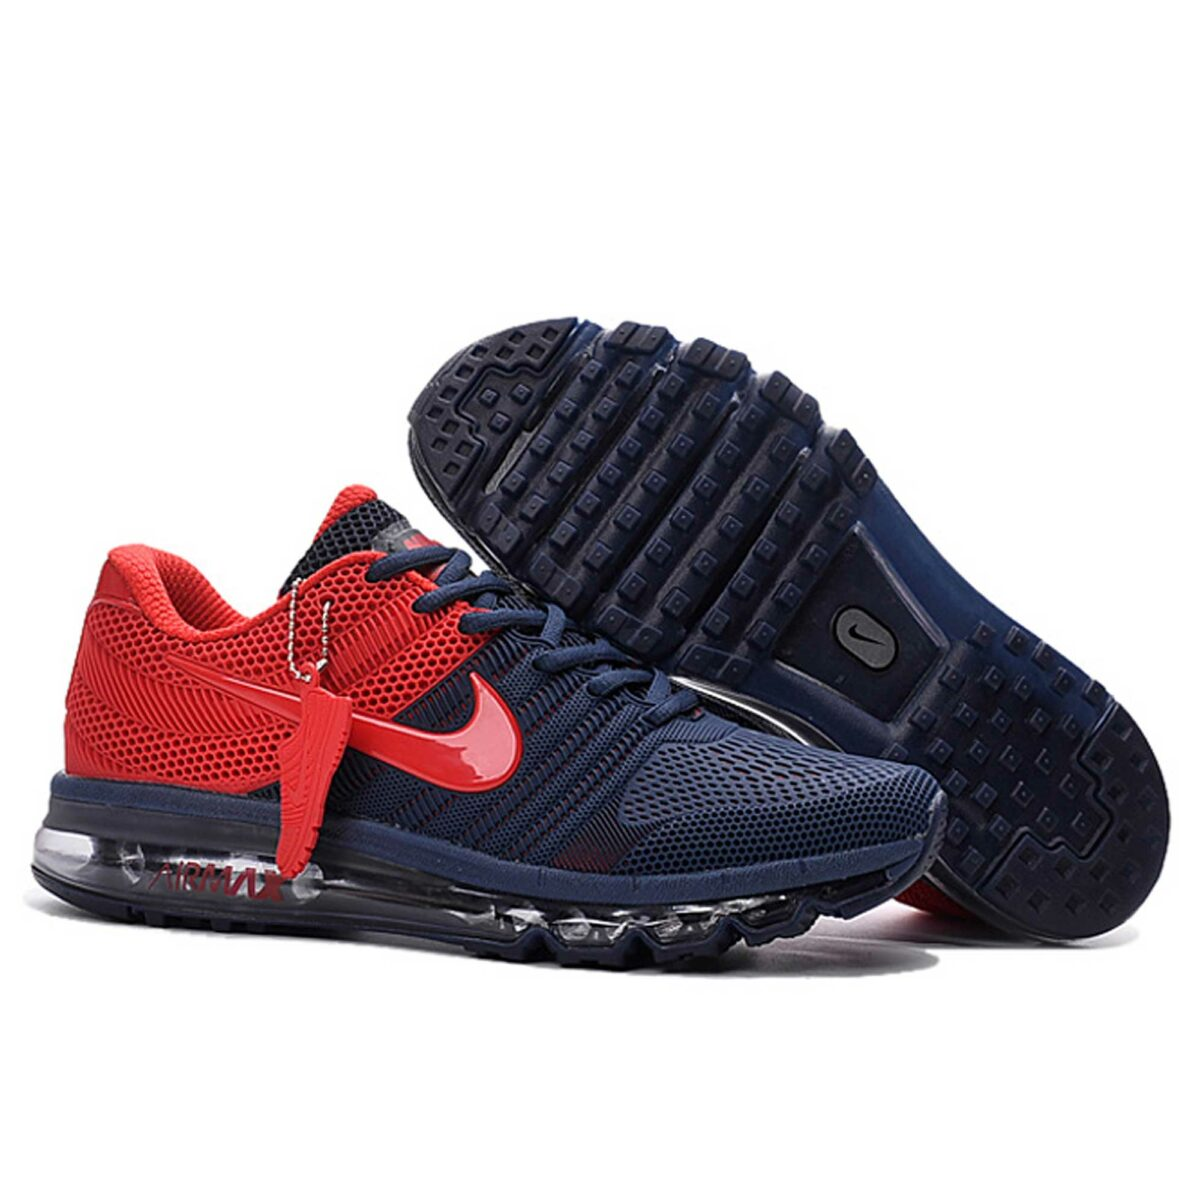 nike air max 2017 KPU dark blue red купить